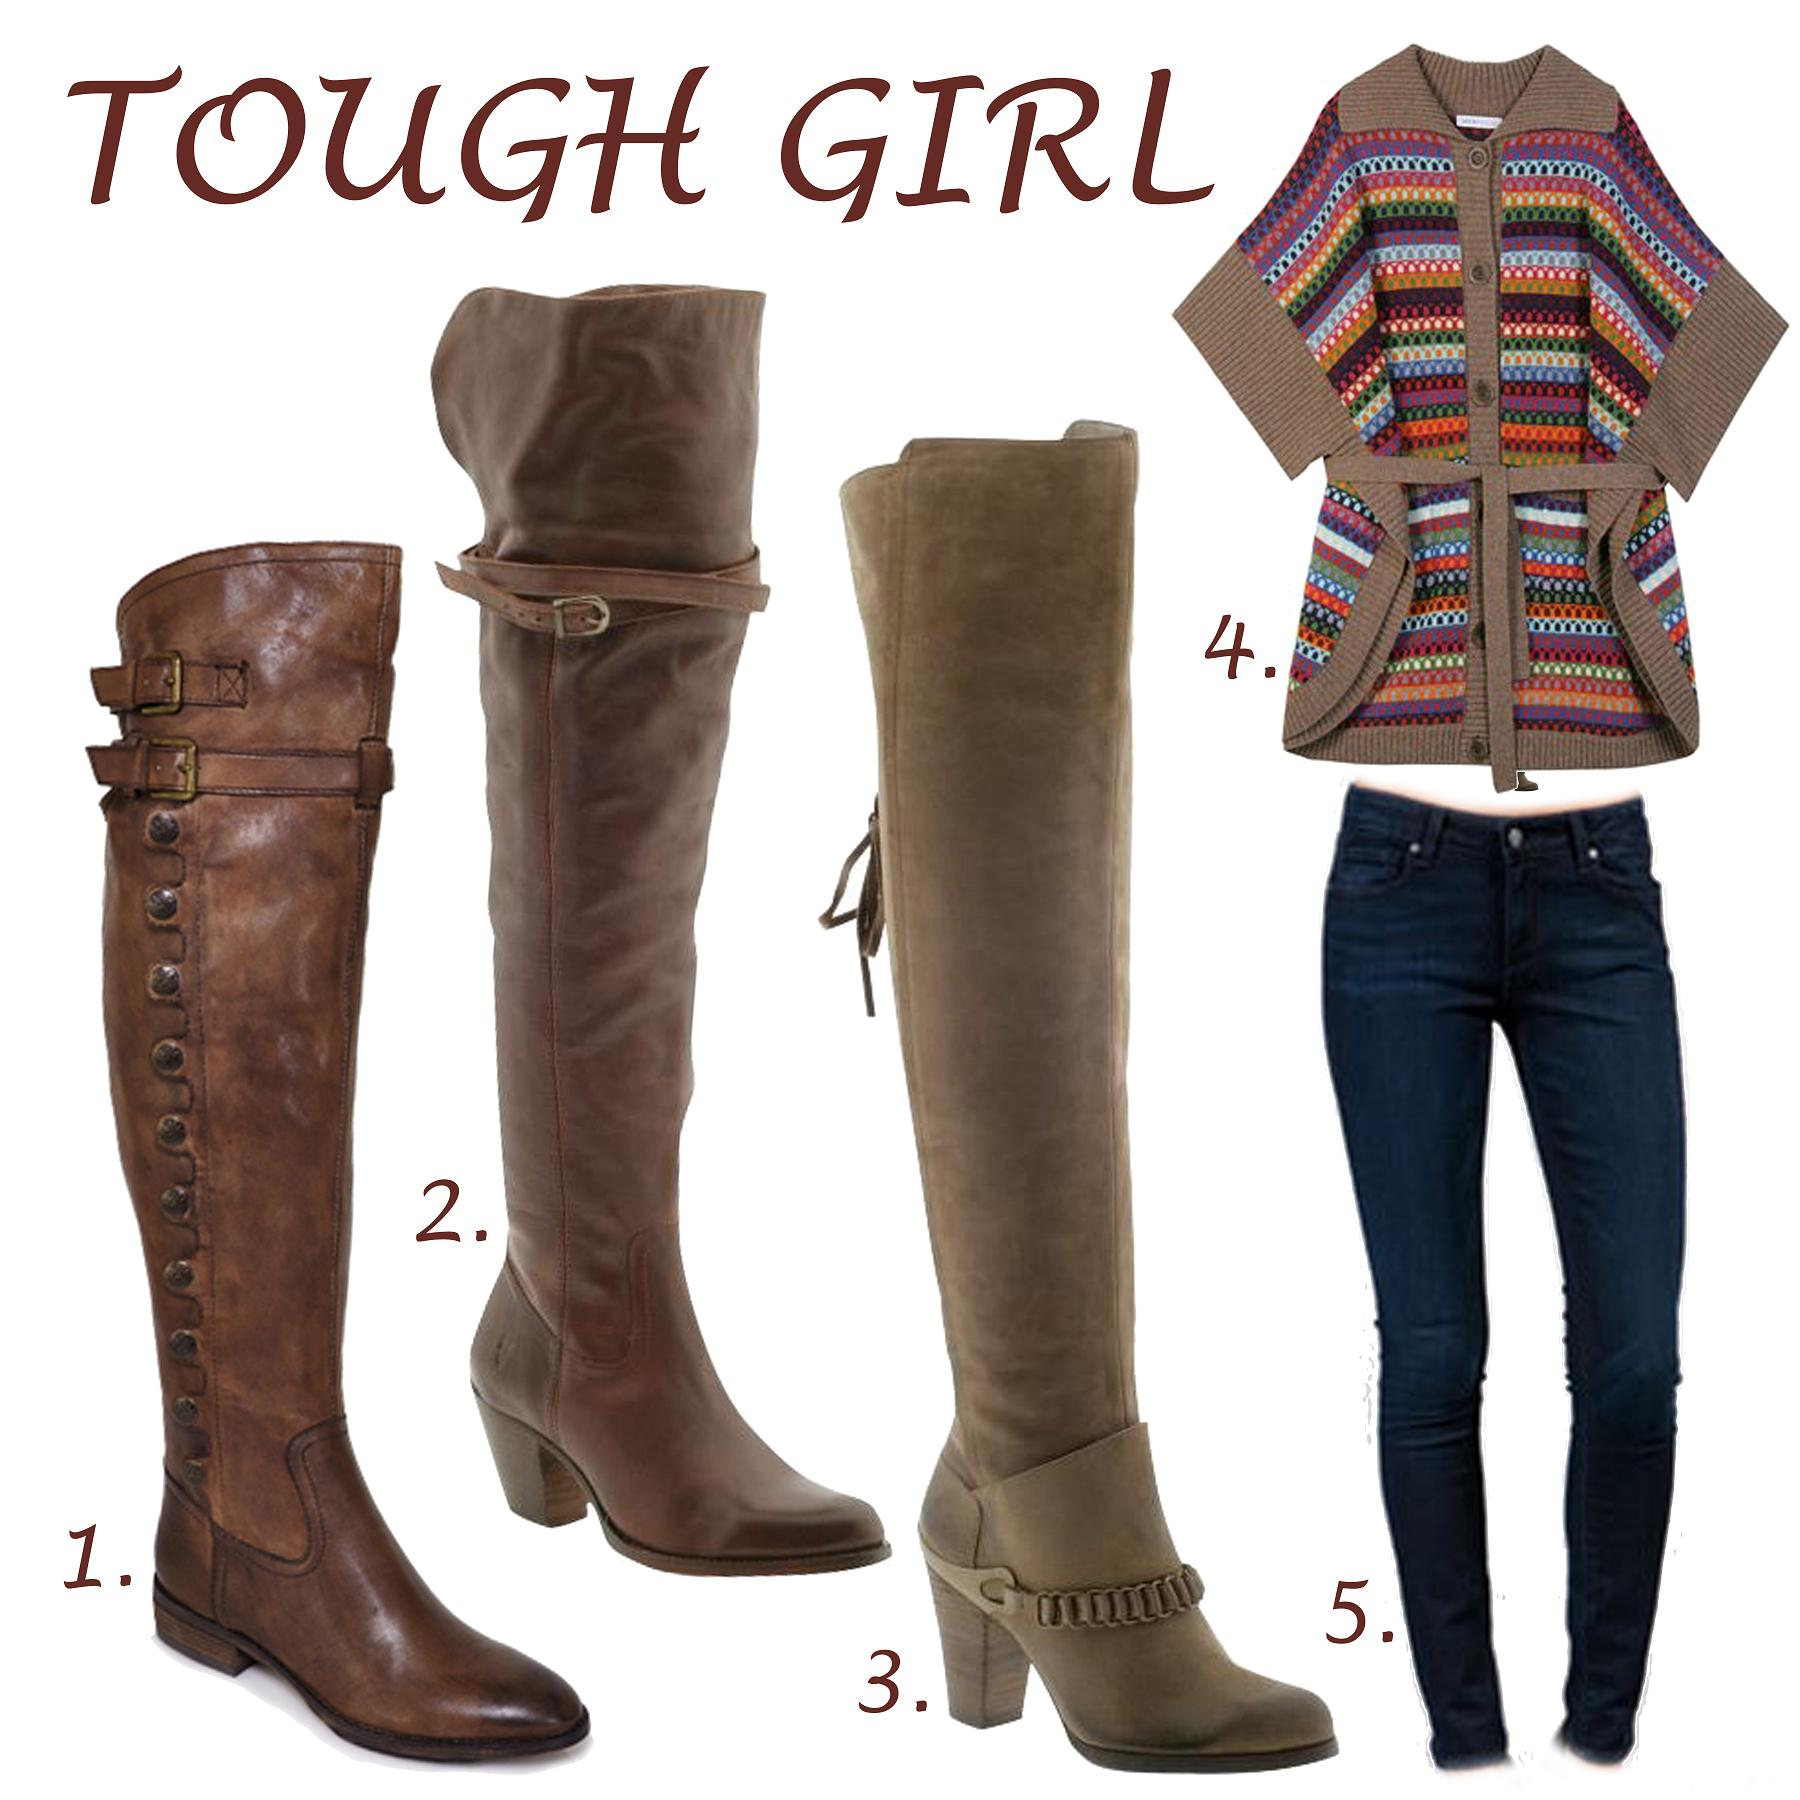 Shopzilla - Womens Brown Leather Dress Boots Women's Shoes